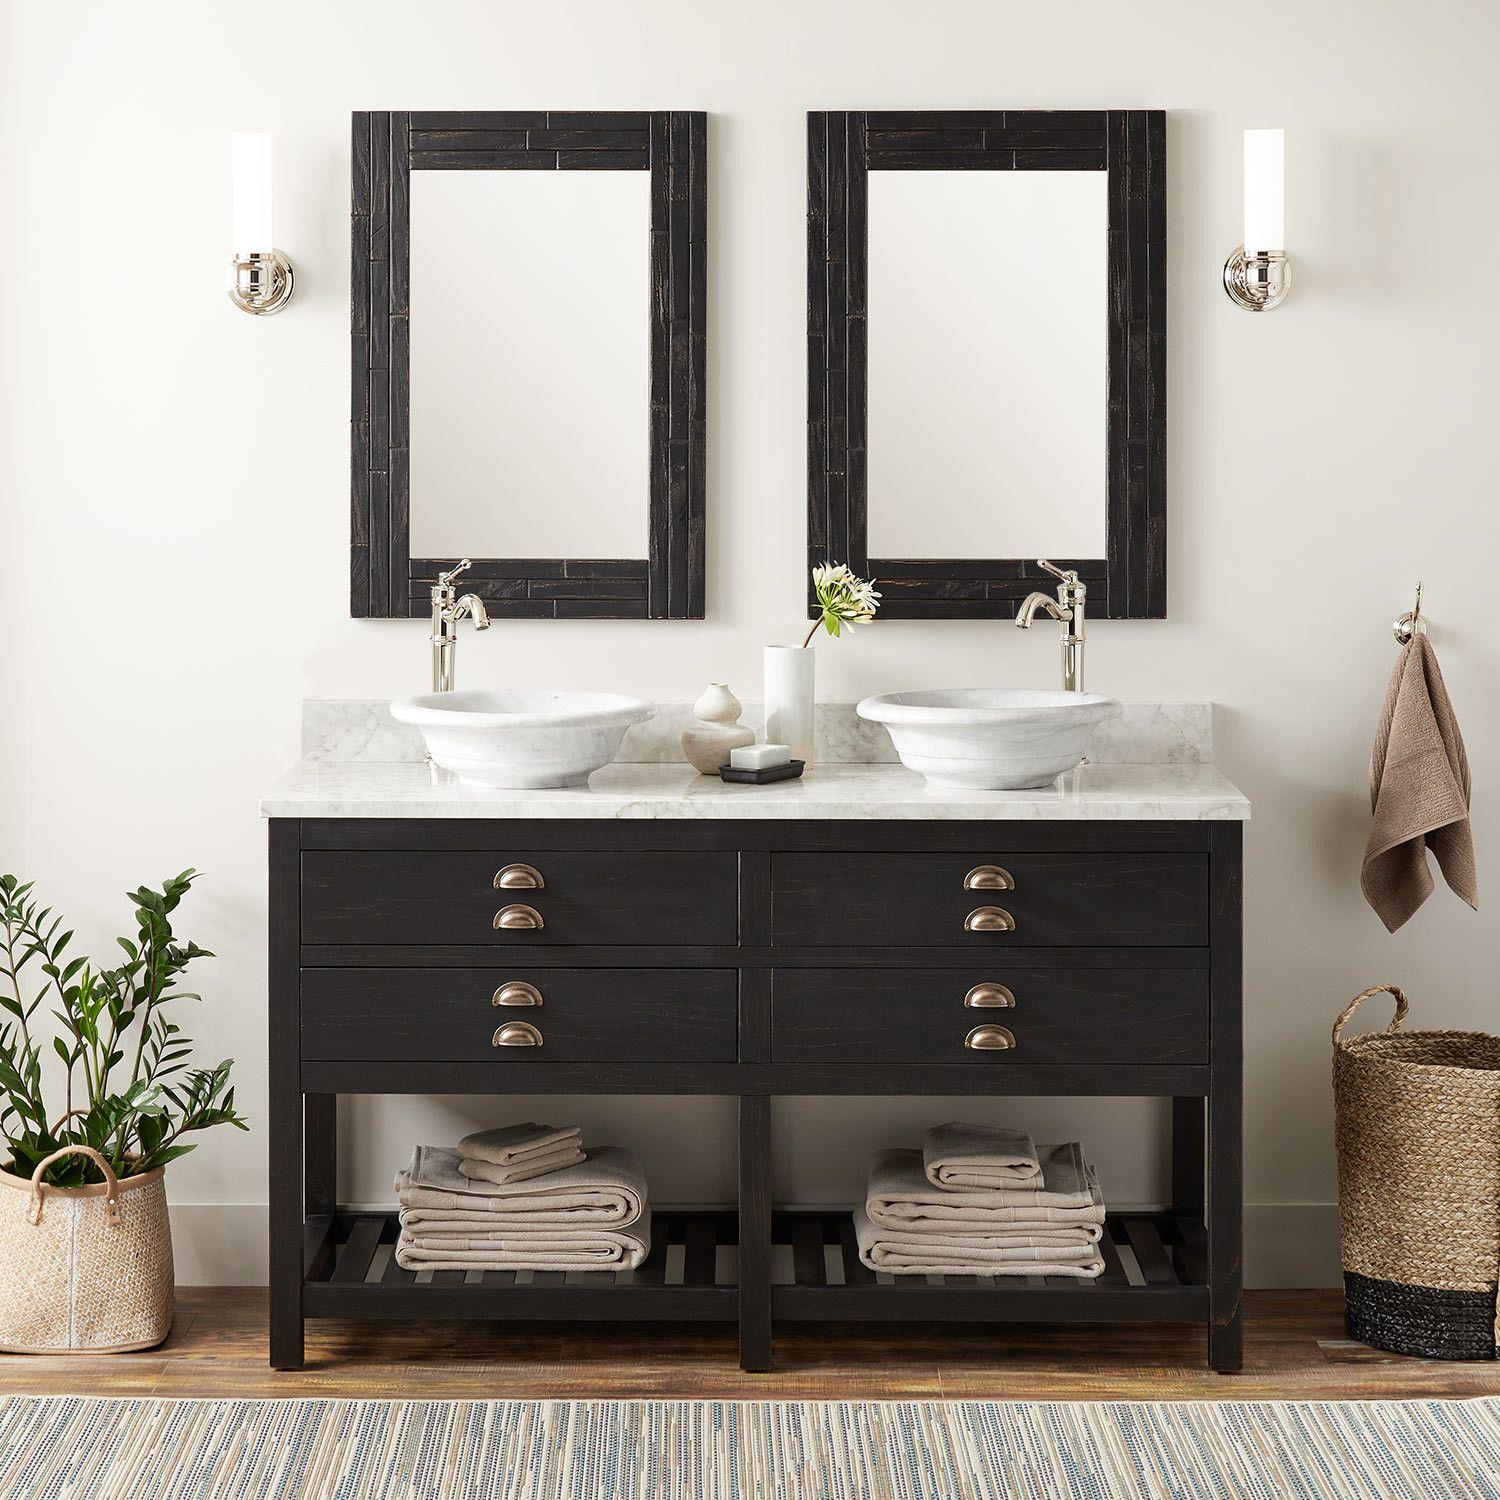 60 Ansel Double Vessel Sinks Console Vanity Rustic Black Bathroom Vanities Bathroom